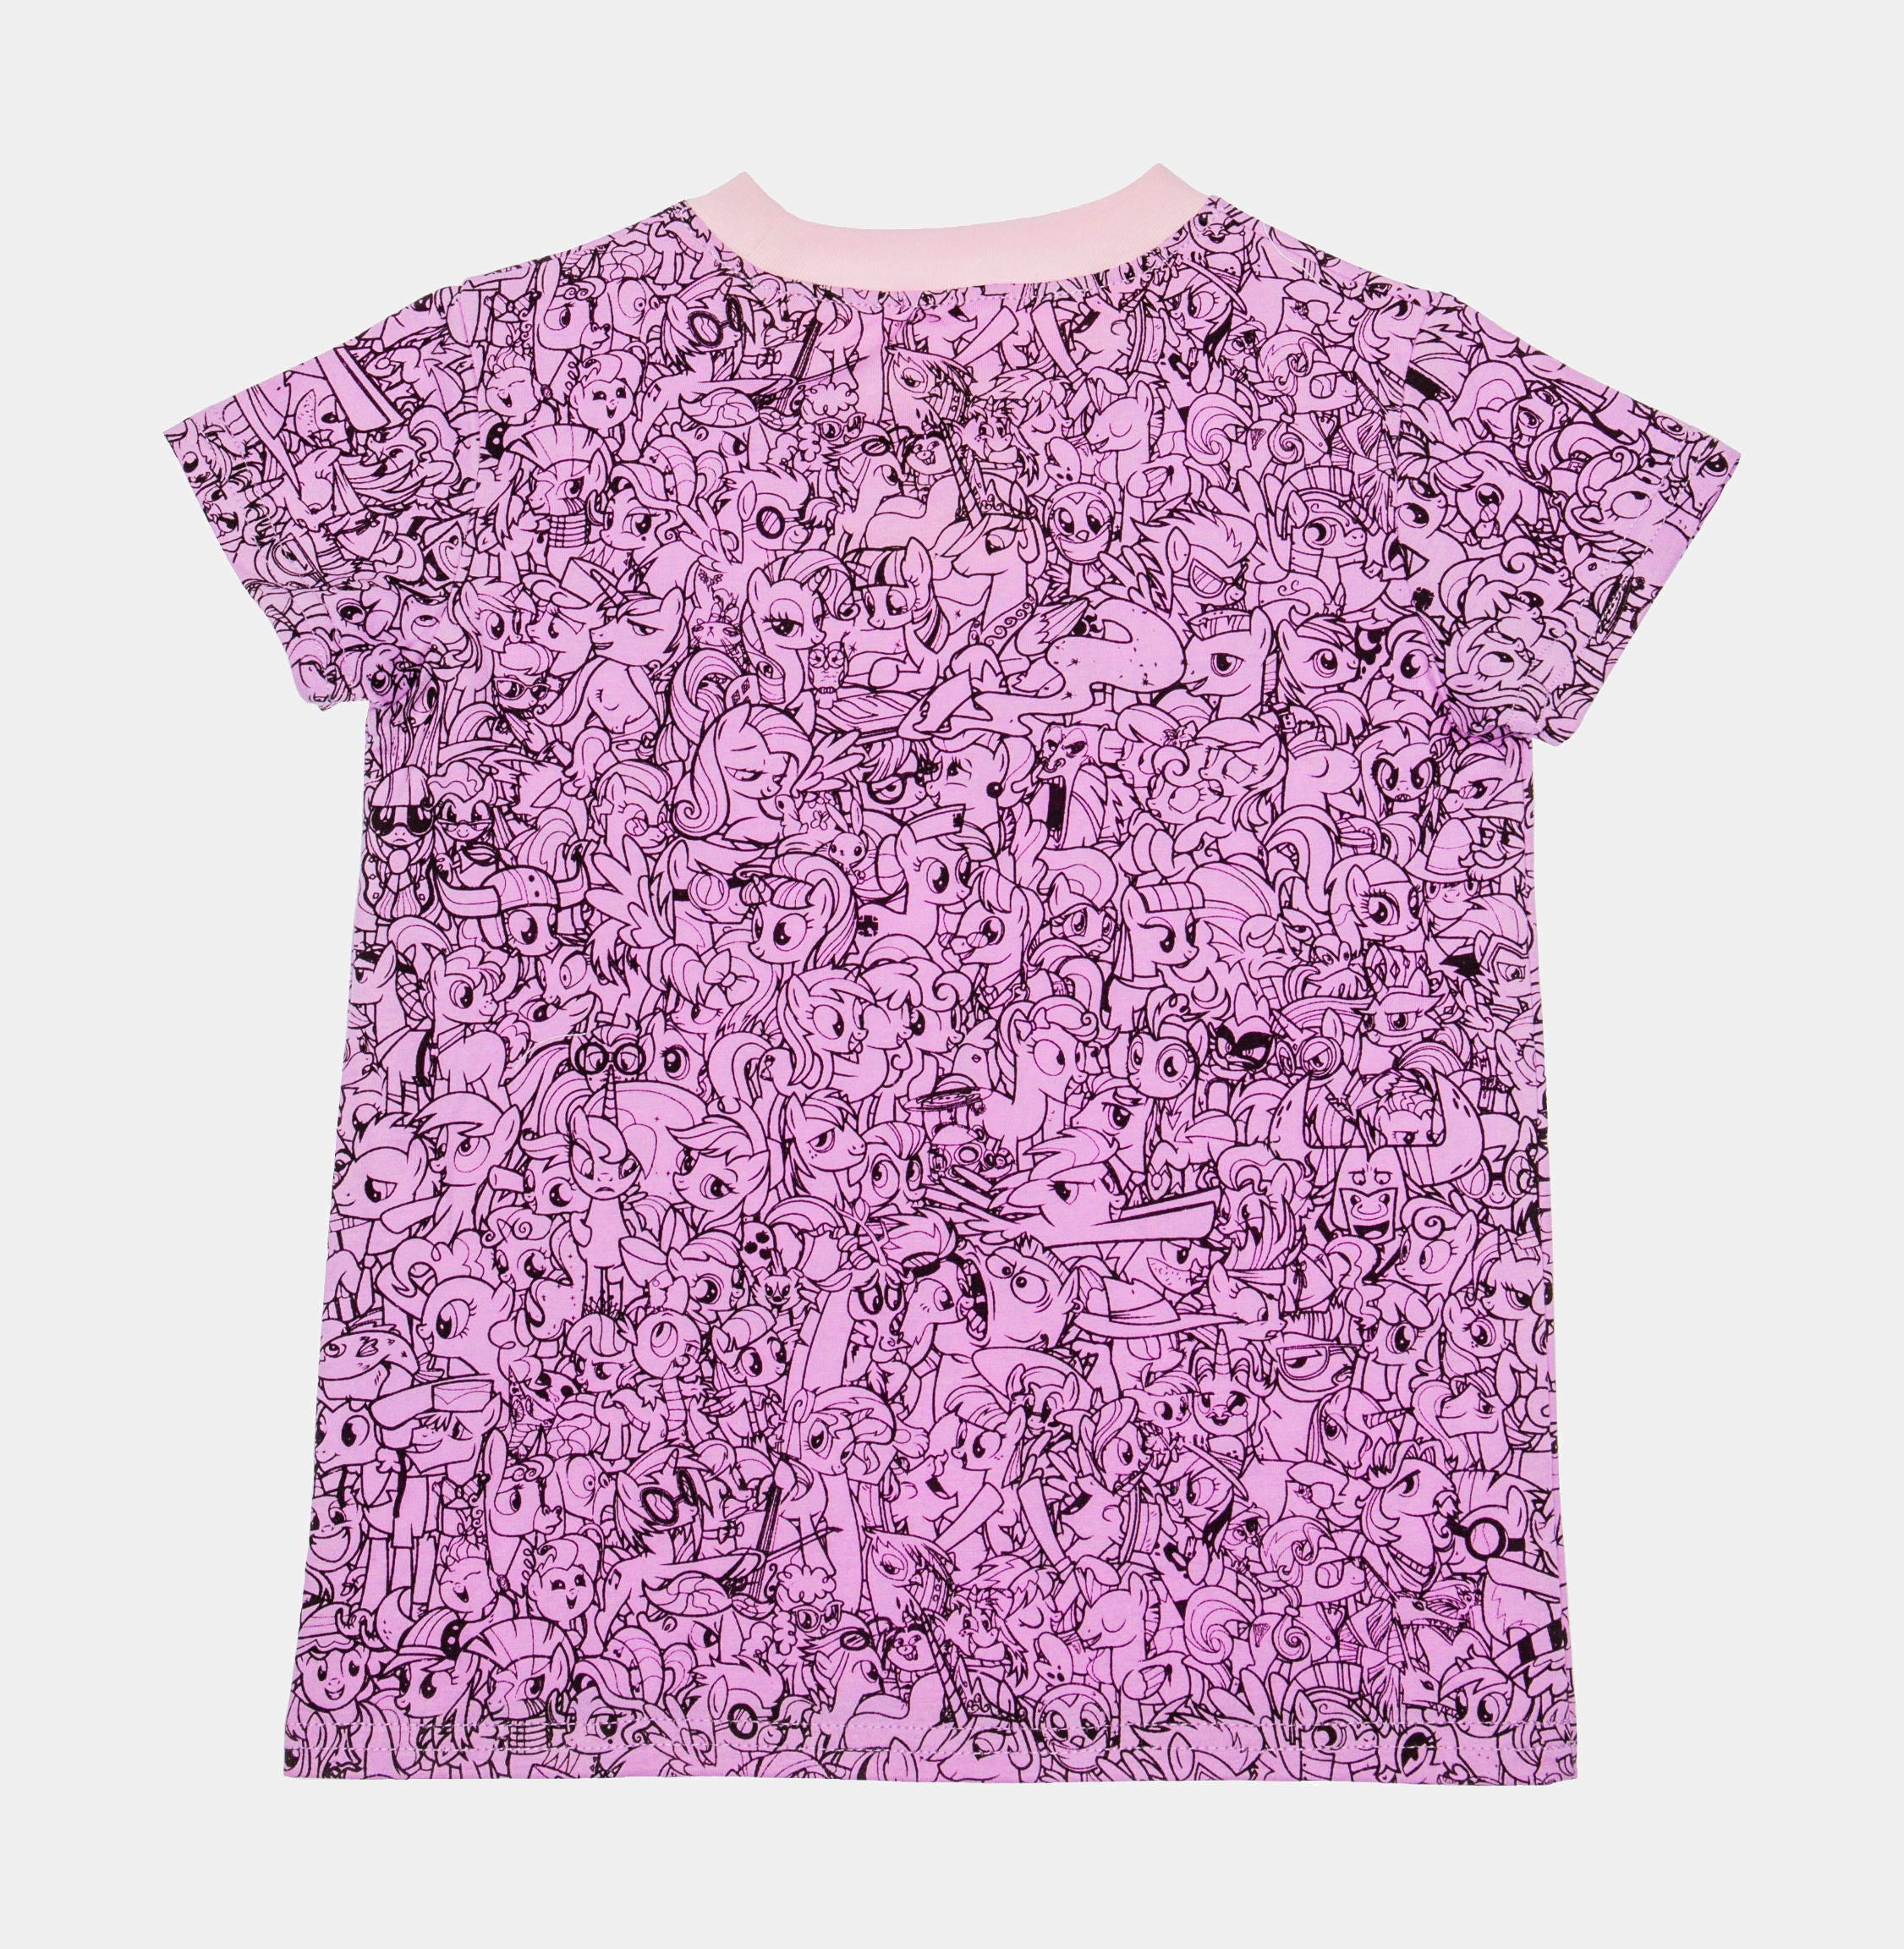 My Little Pony All Over Print Infant Toddler T-Shirt (Purple/Black)